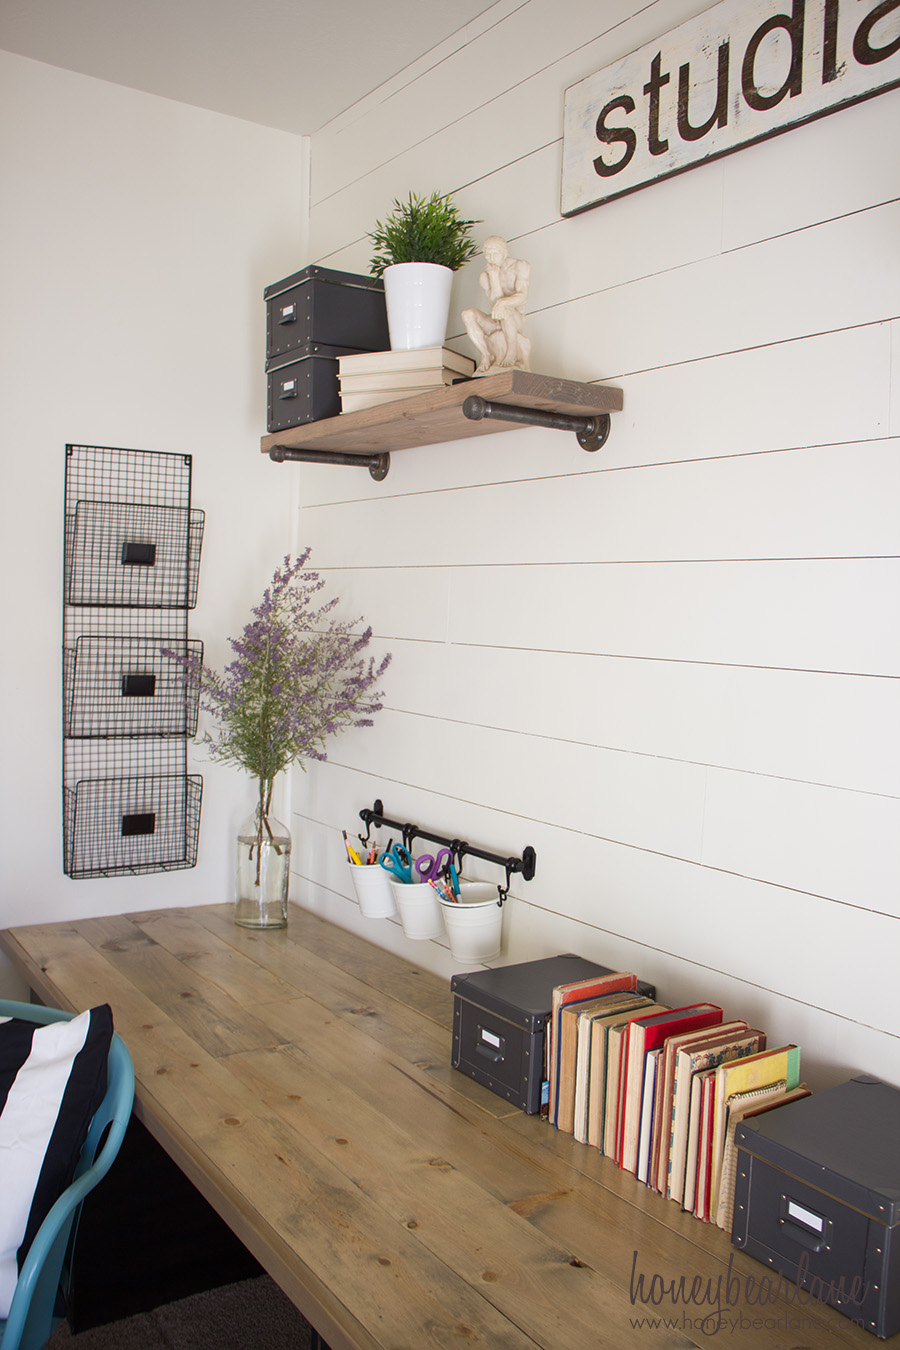 If you need a large desk to fill a space, heres the perfect solution: build a farmhouse desk! Its a rustic industrial solution for